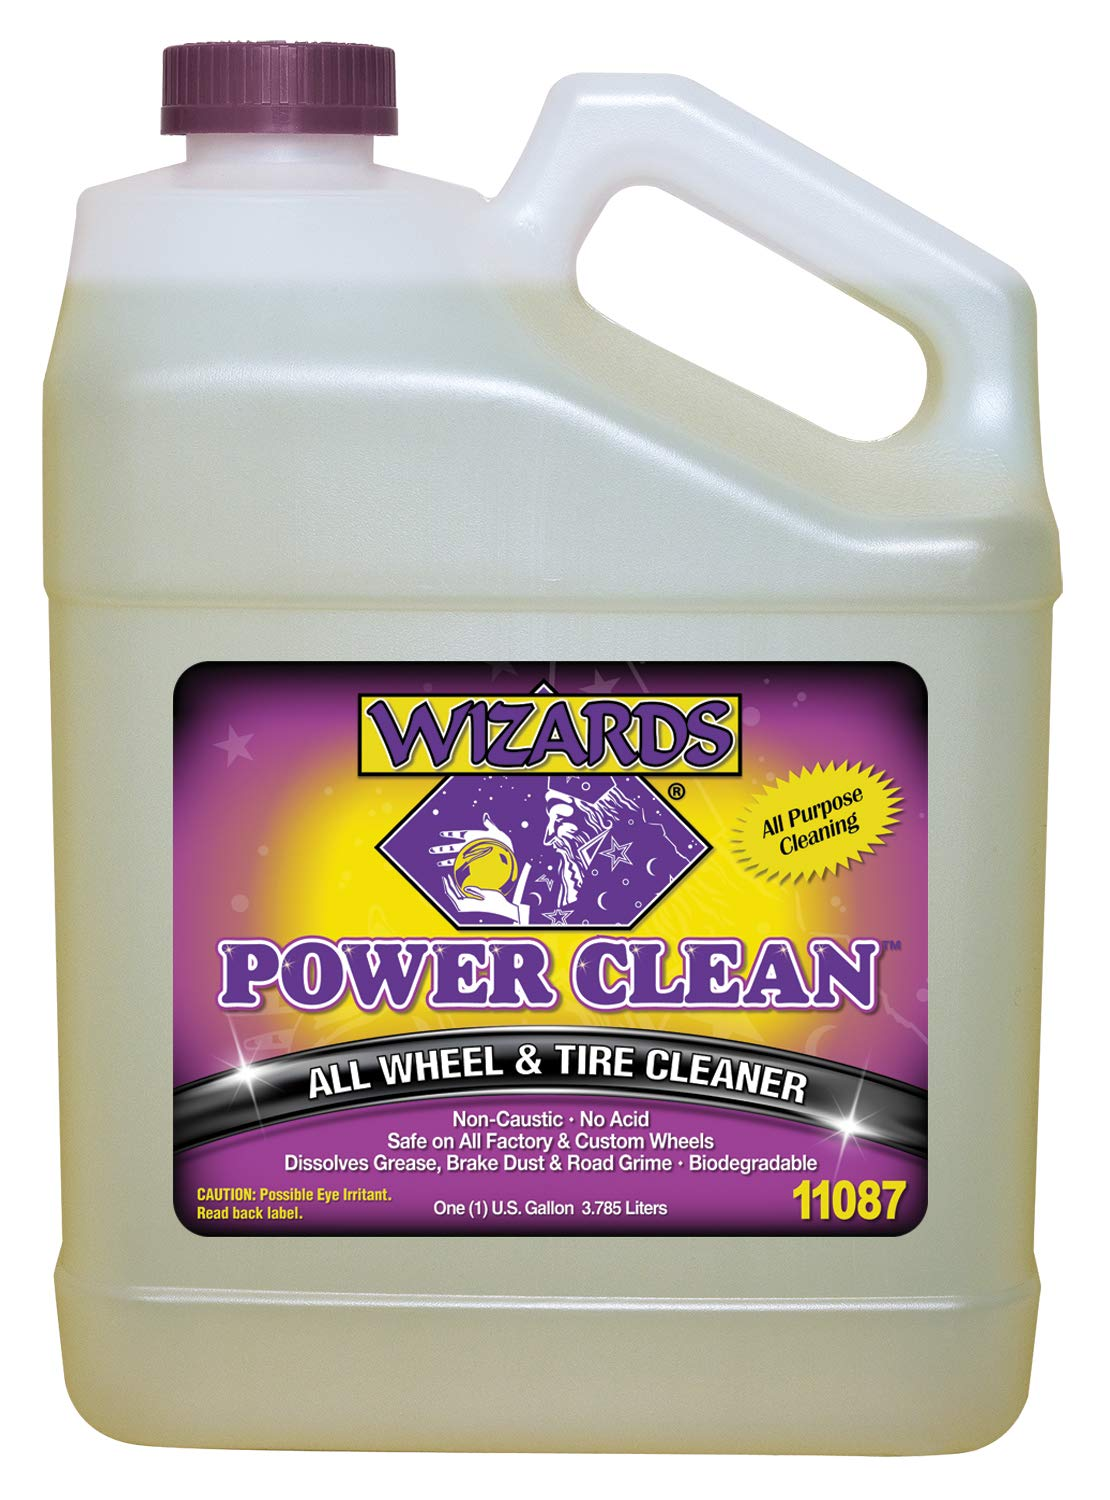 Wizards Interior Cleaning Supplies (Power Clean 1 Gallon) by Wizards